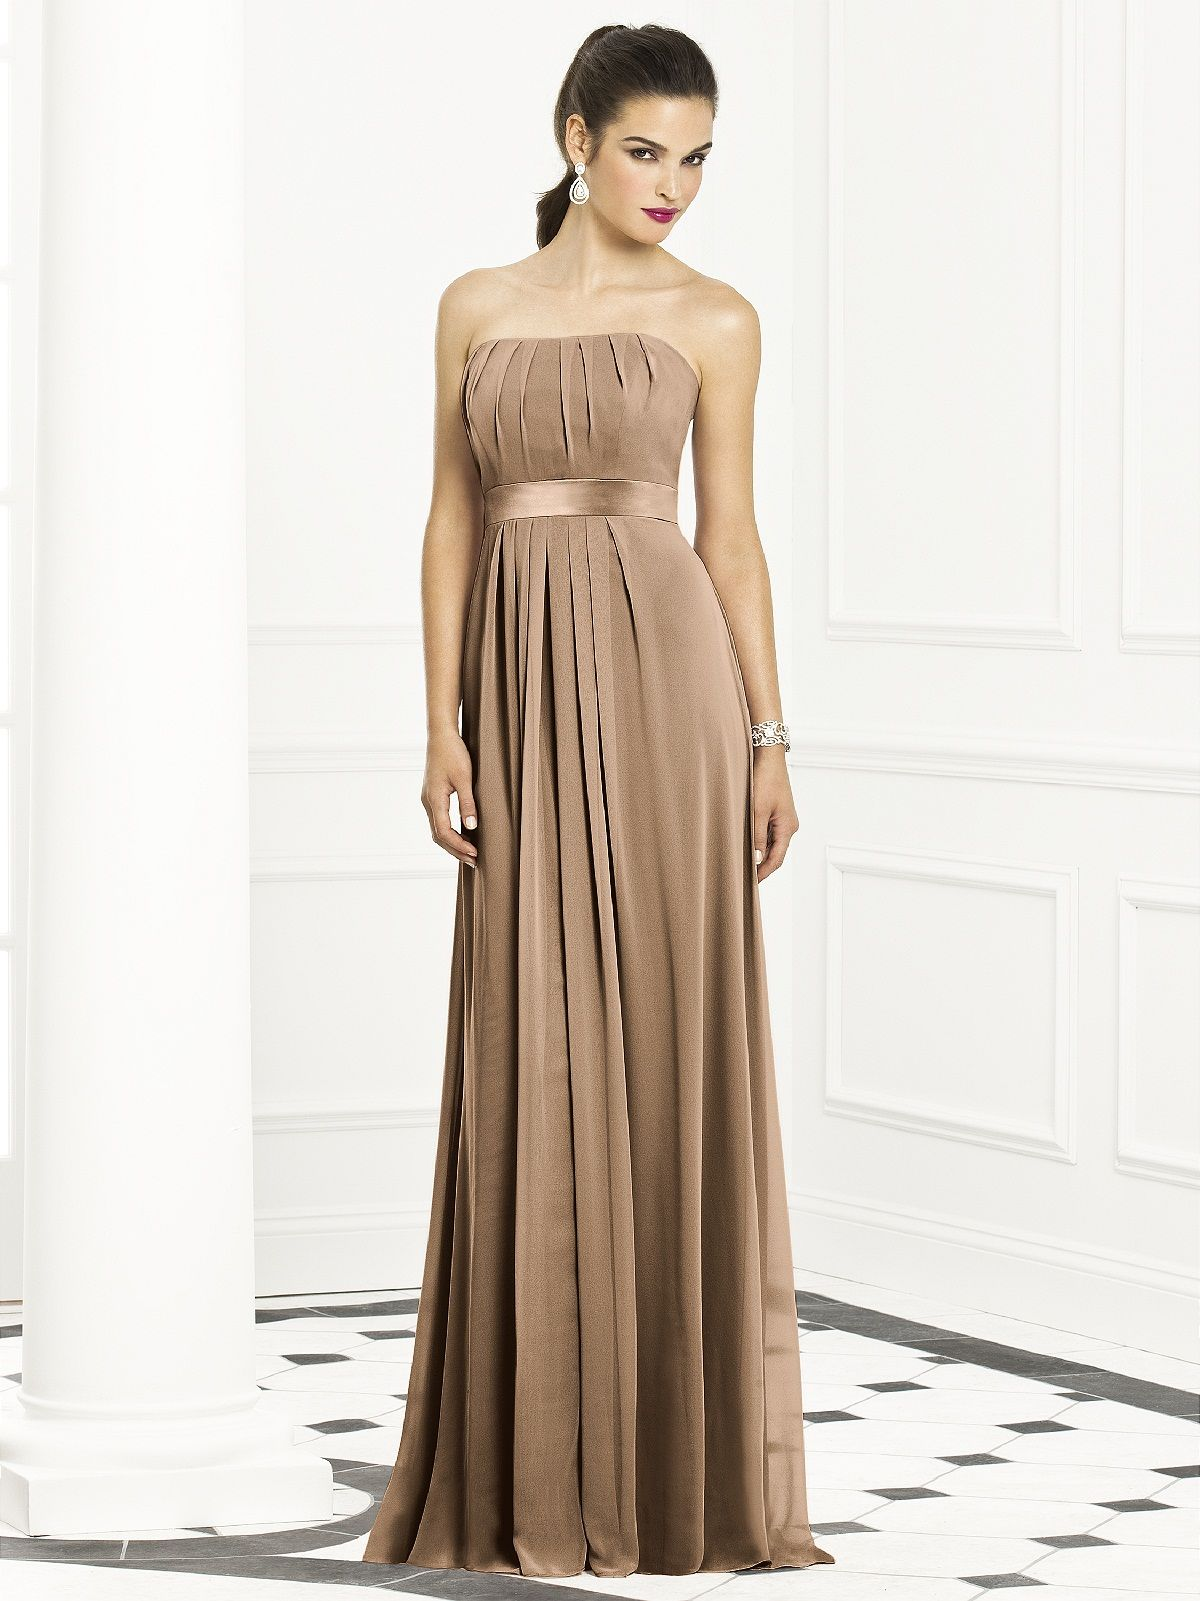 Style 6672 cappuccino dessy inspired by cappucino pinterest style 6672 cappuccino dessy cappuccinosbridesmaid ombrellifo Choice Image